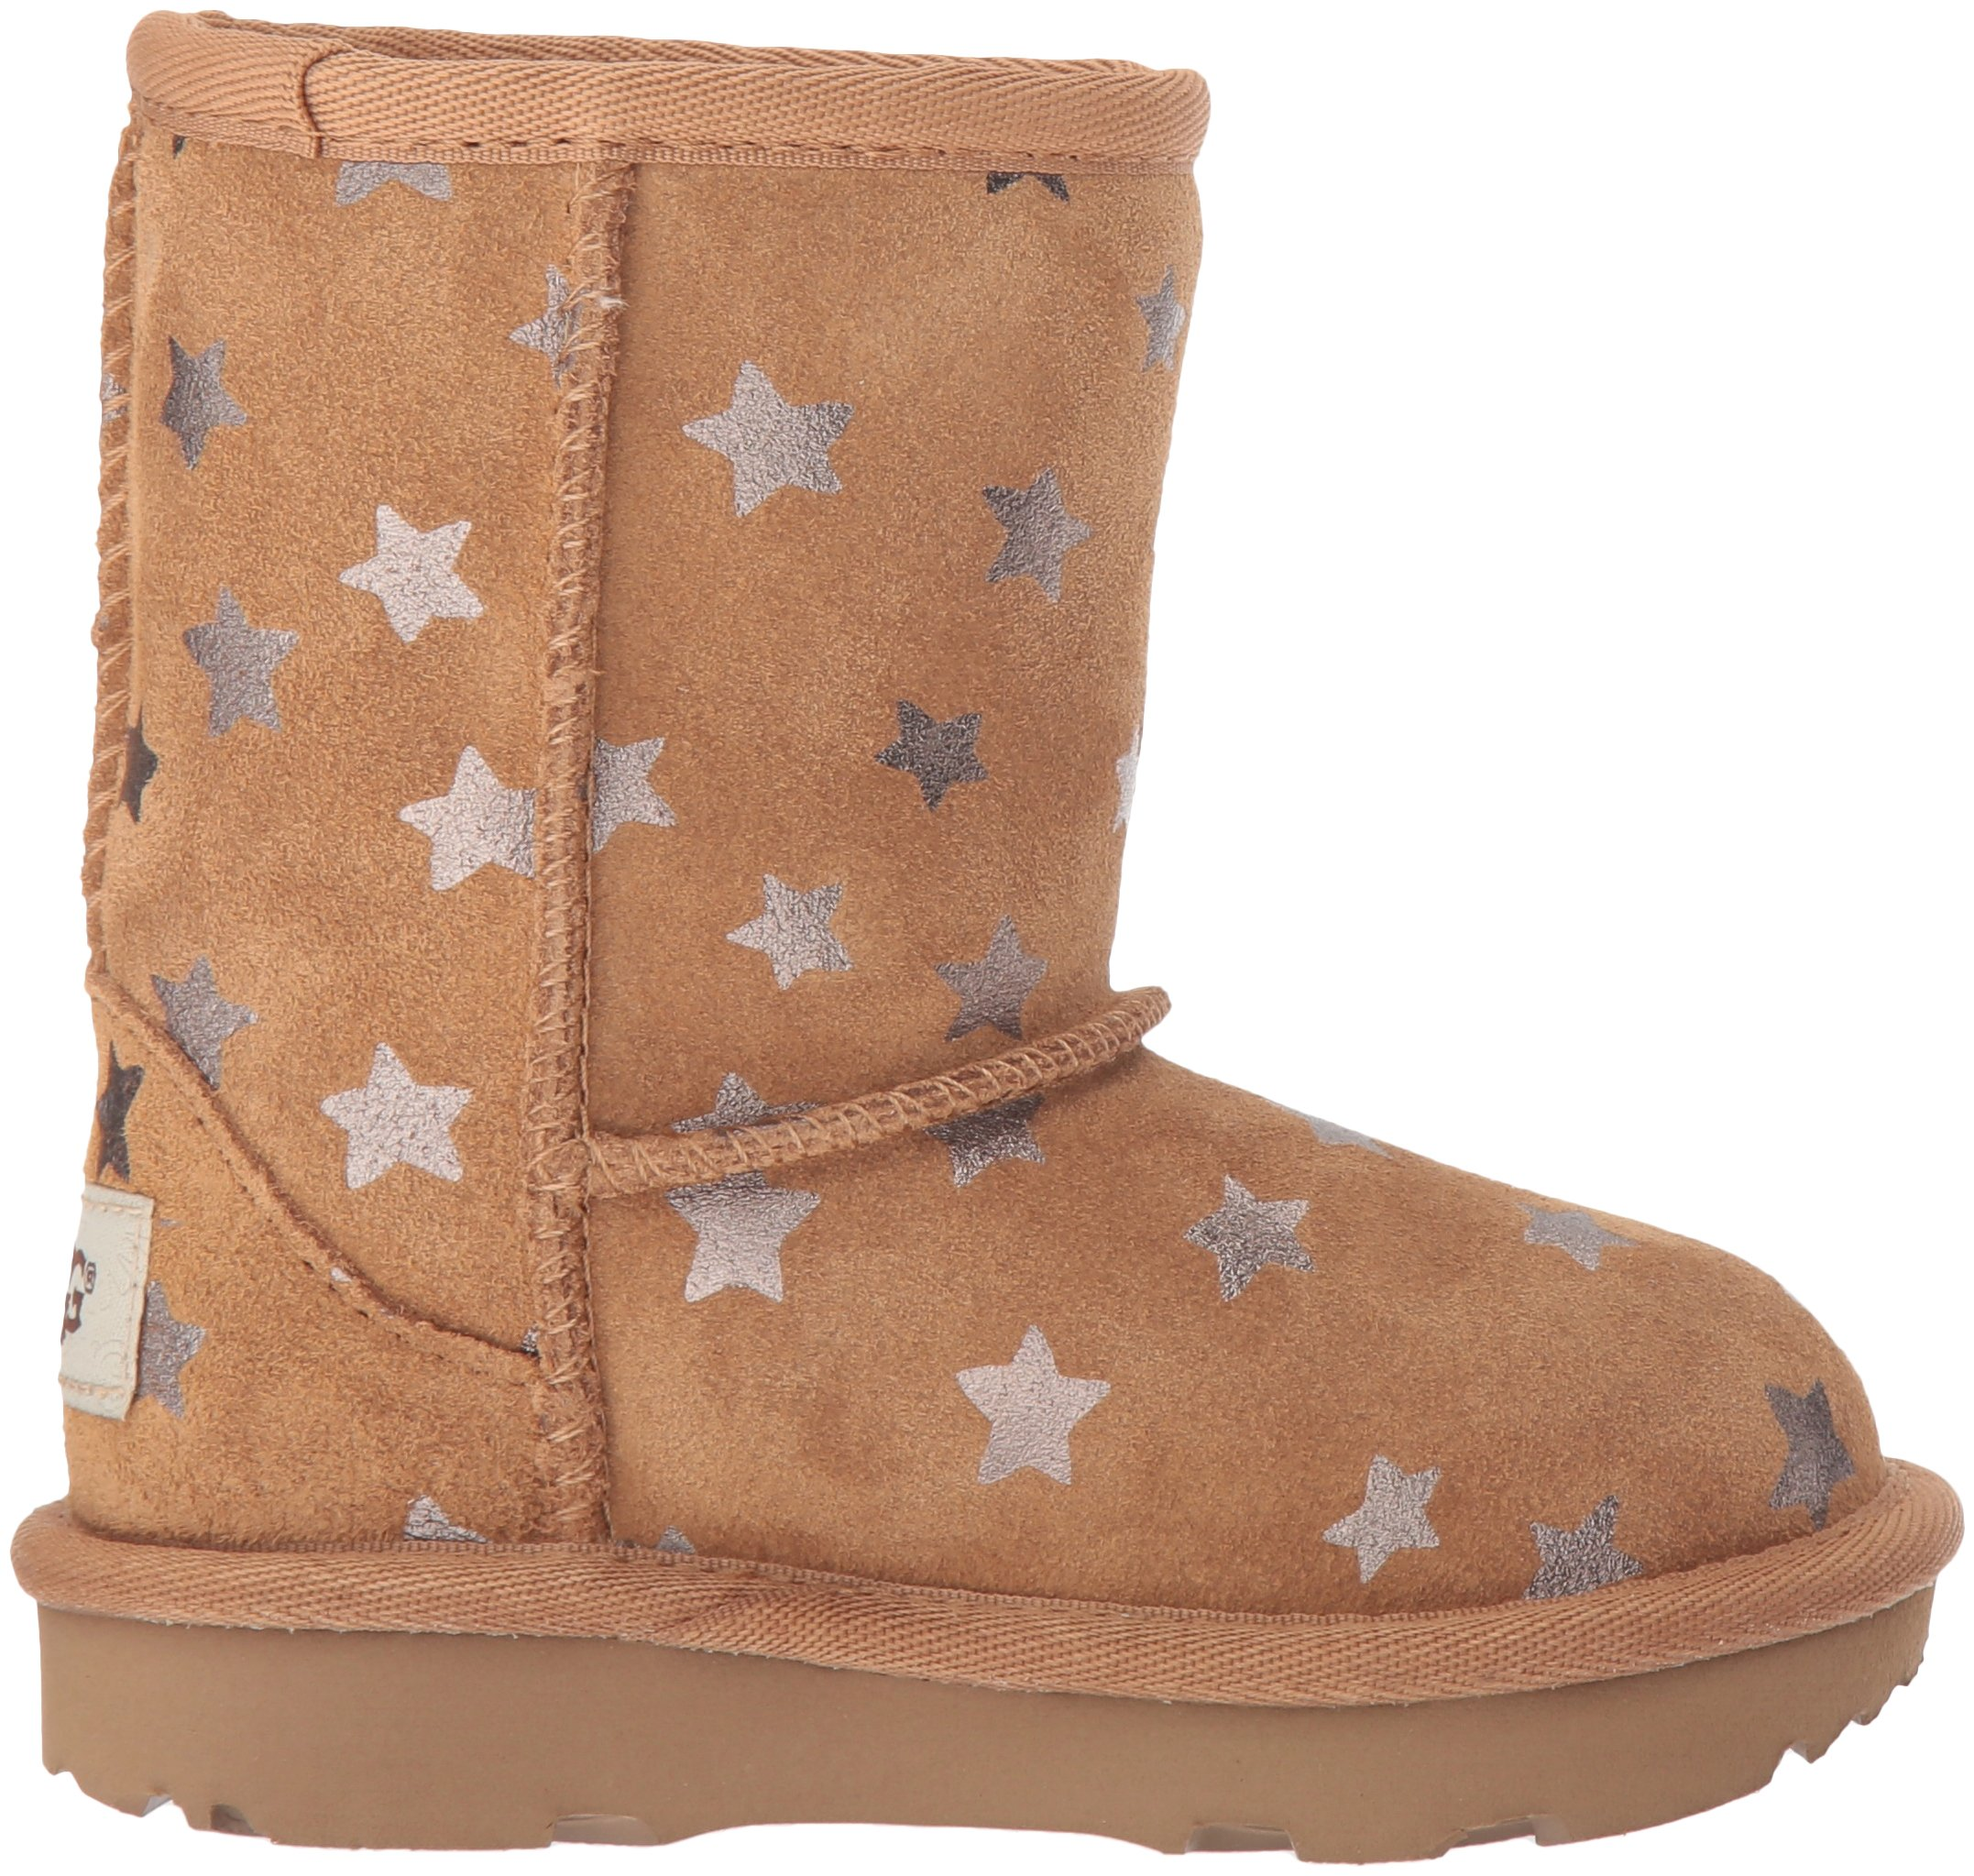 UGG Girls T Classic Short II Stars Pull-On Boot, Chestnut, 7 M US Toddler by UGG (Image #7)